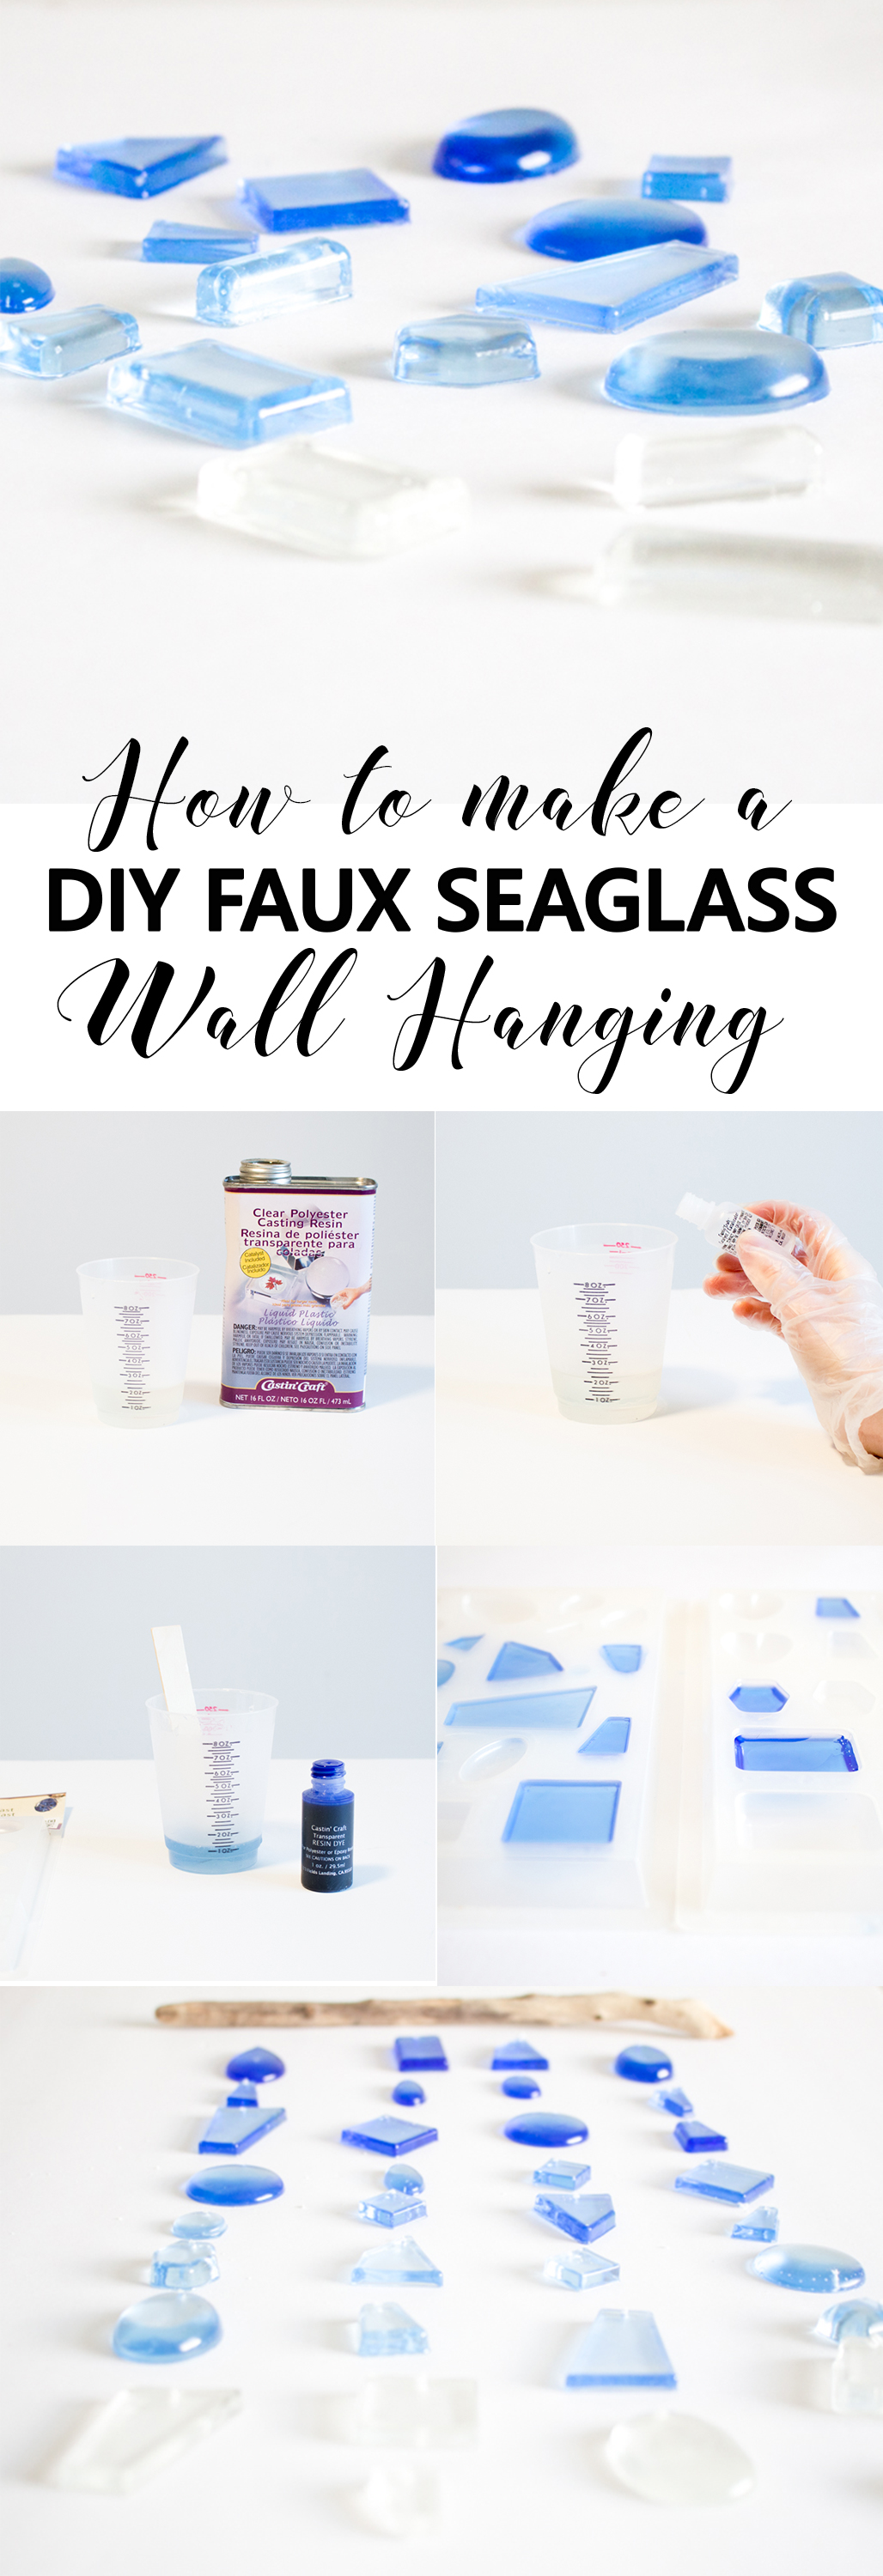 diy faux seaglass